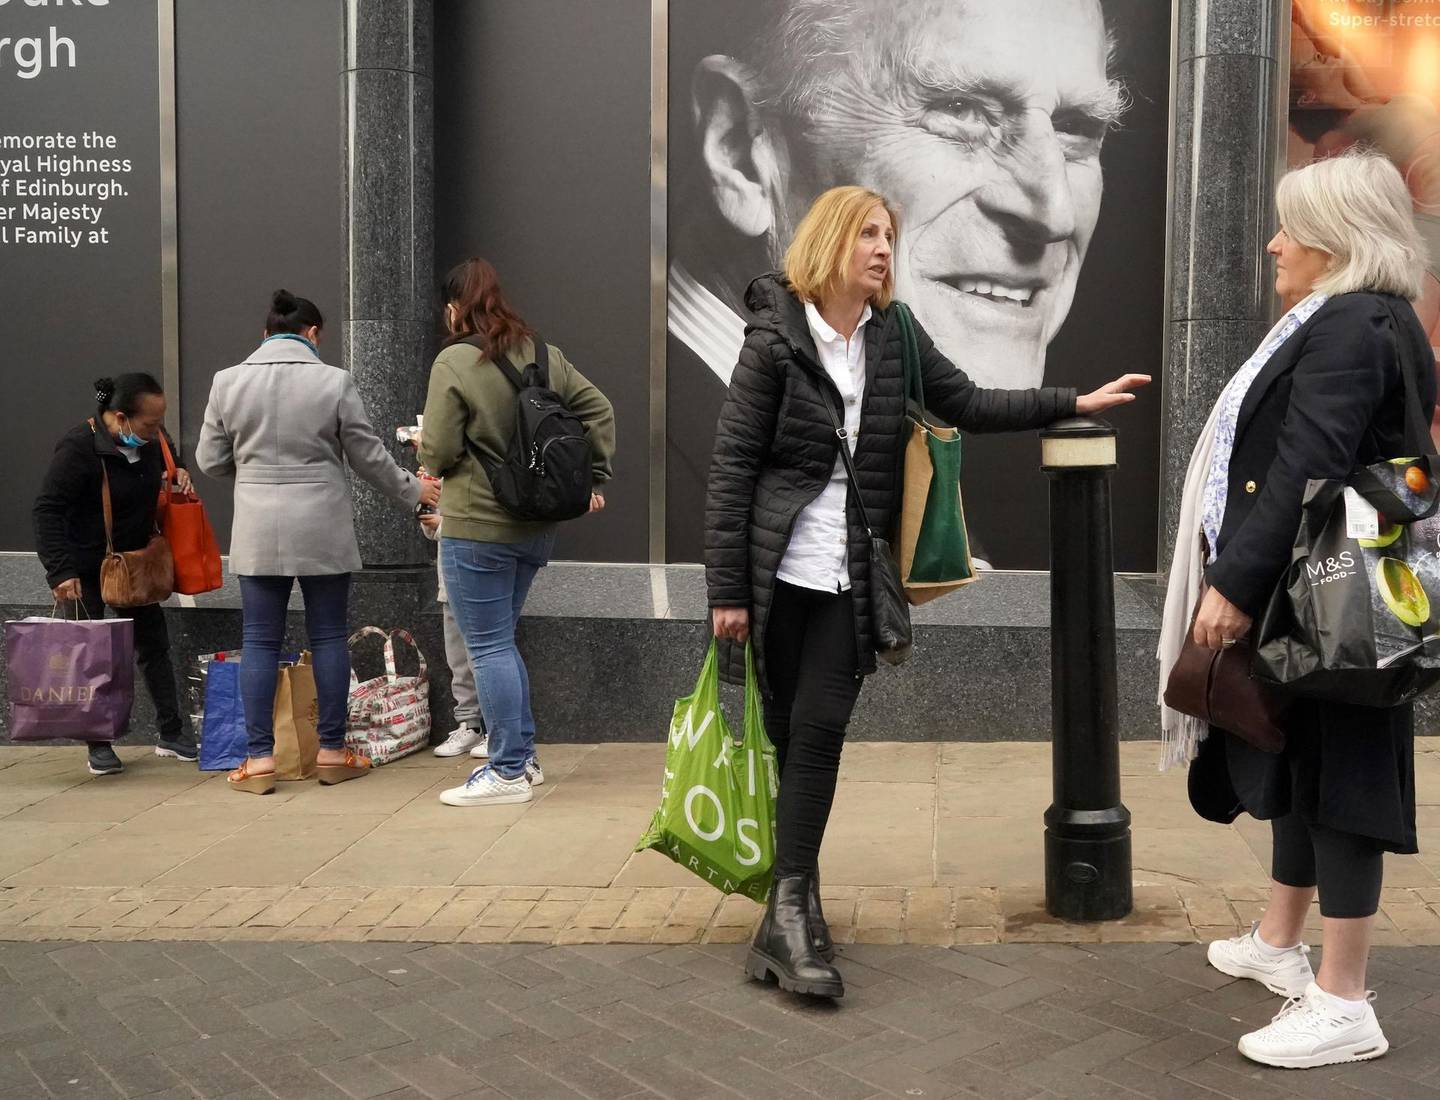 WINDSOR, UNITED KINGDOM - APRIL 16: Shoppers chat next to a photograph commemorating Prince Philip, Duke of Edinburgh, on the window of Marks & Spencer in Windsor High Street on April 16, 2021 in Windsor, United Kingdom. The Queen announced the death of her beloved husband, His Royal Highness Prince Philip, Duke of Edinburgh. HRH passed away peacefully on April 9th at Windsor Castle. (Photo by Christopher Furlong/Getty Images)